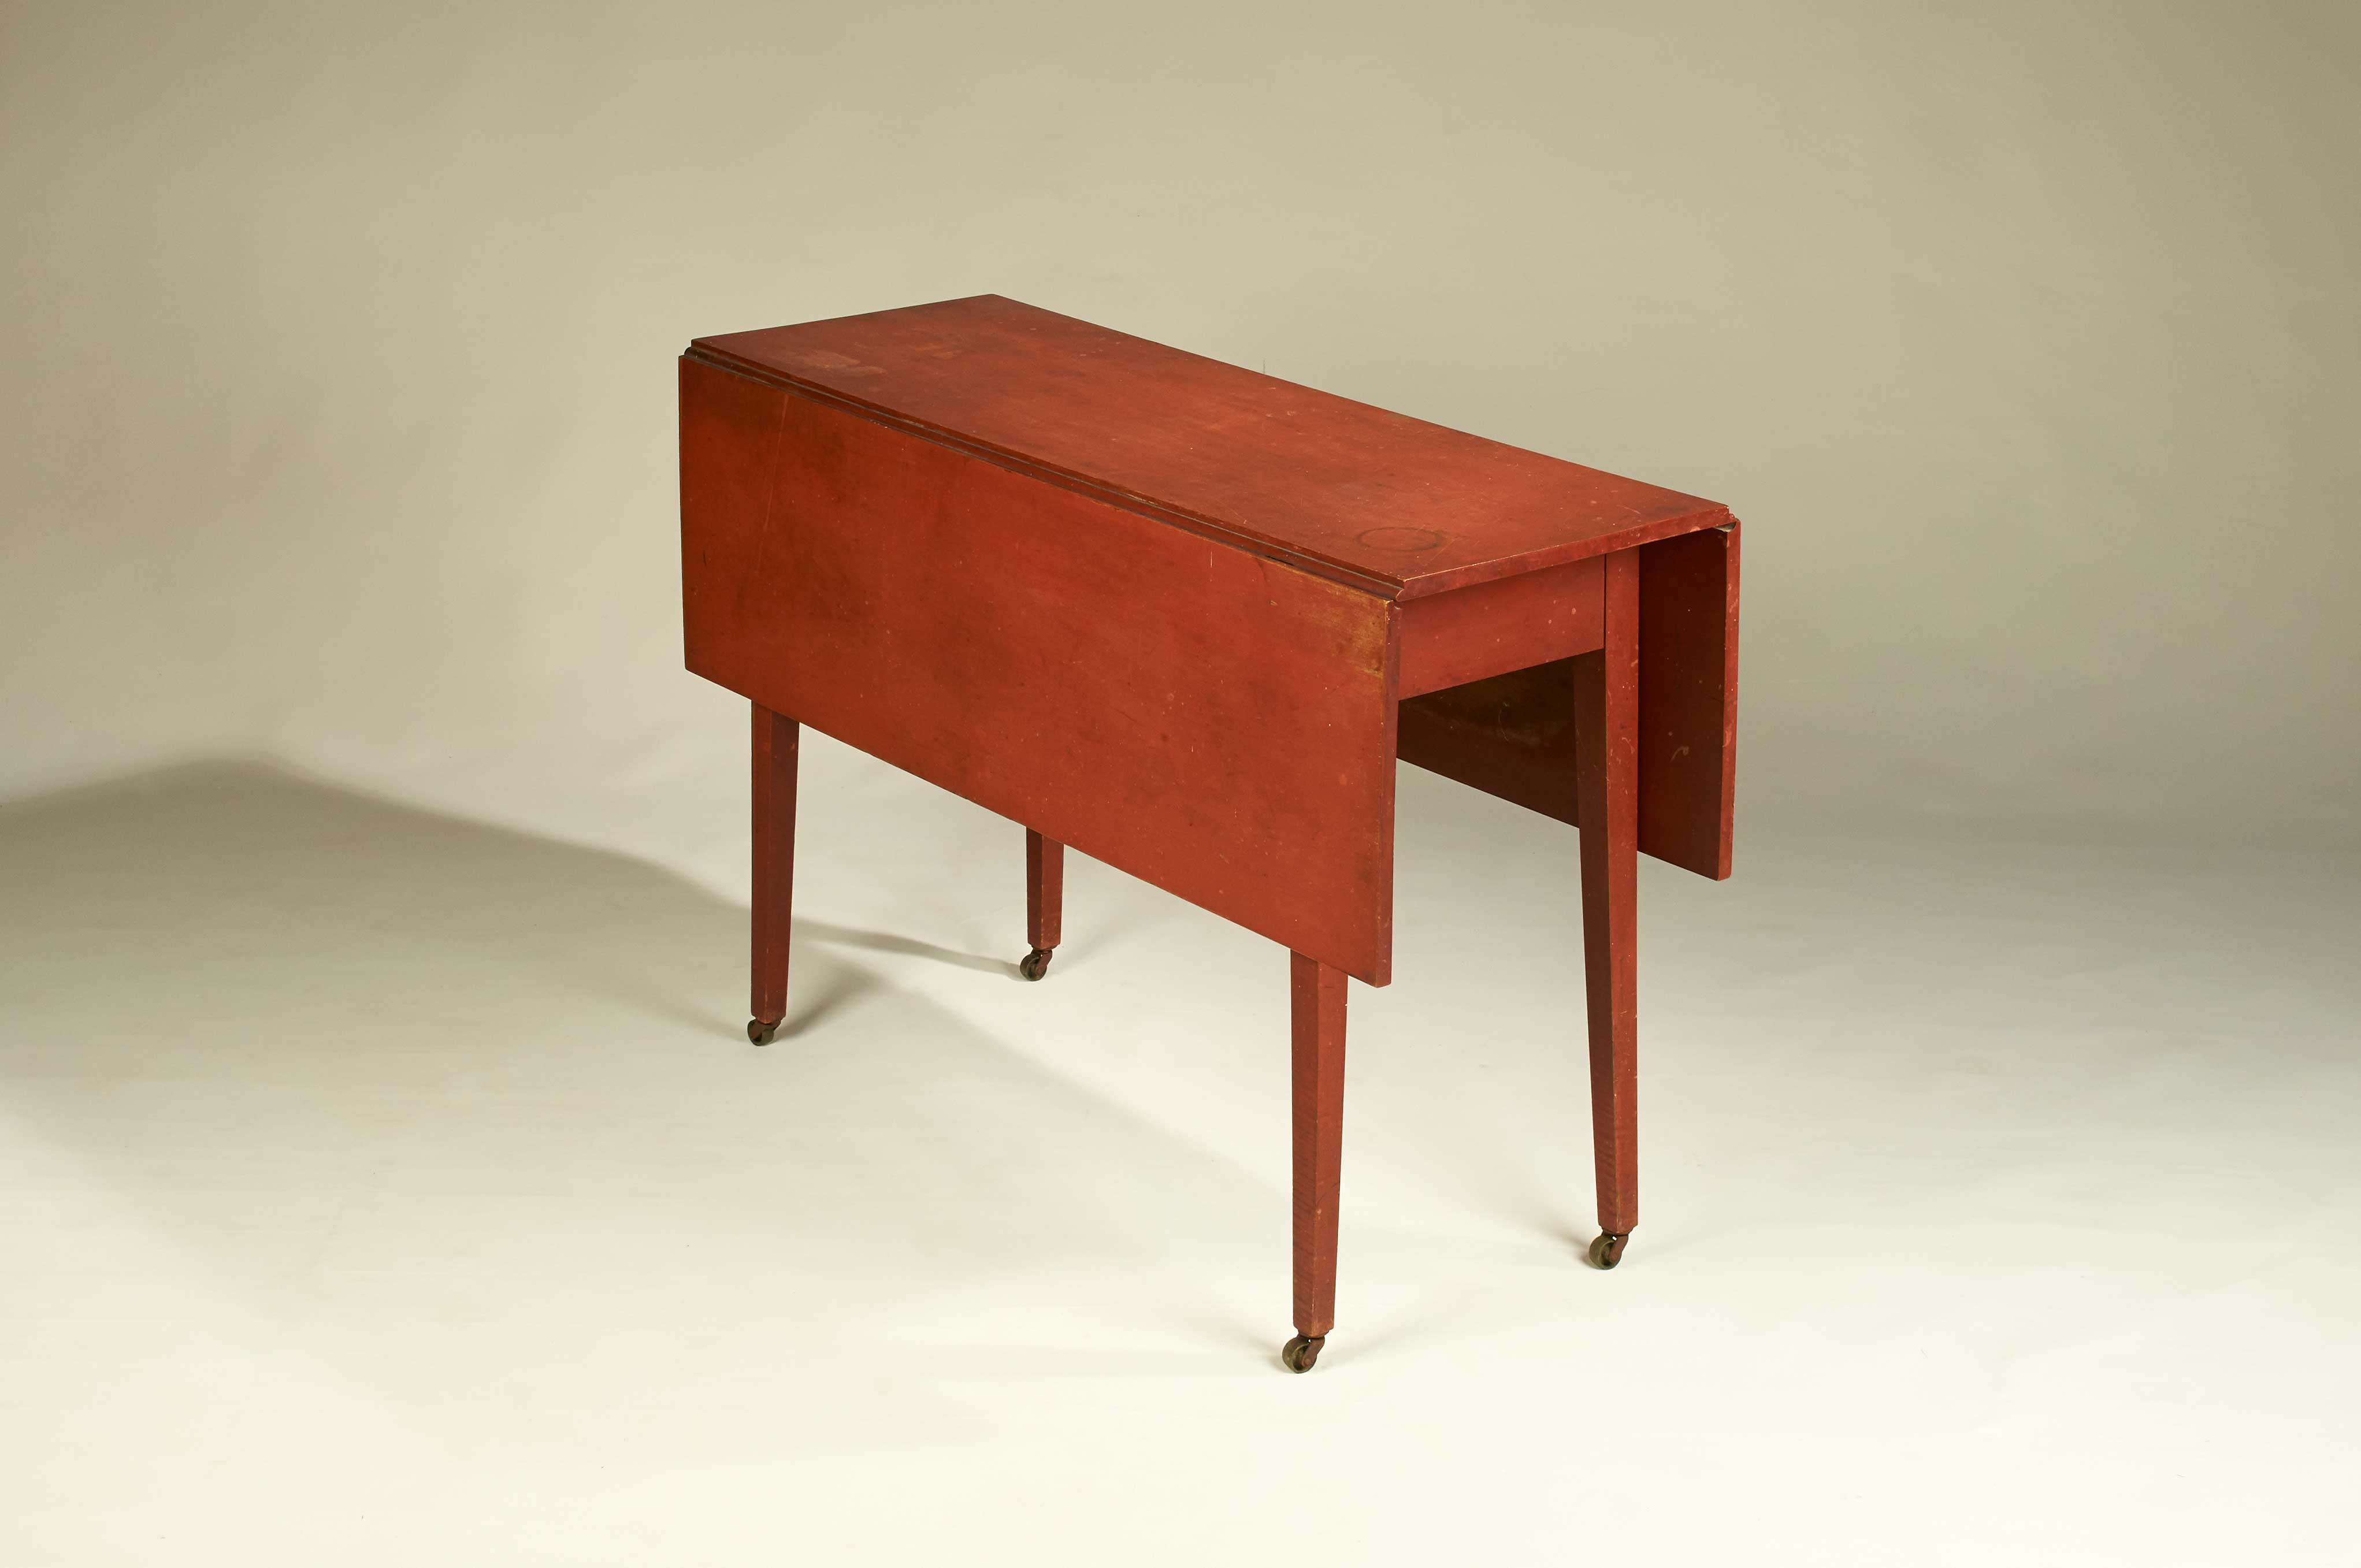 red-painted drop-leaf table rel=